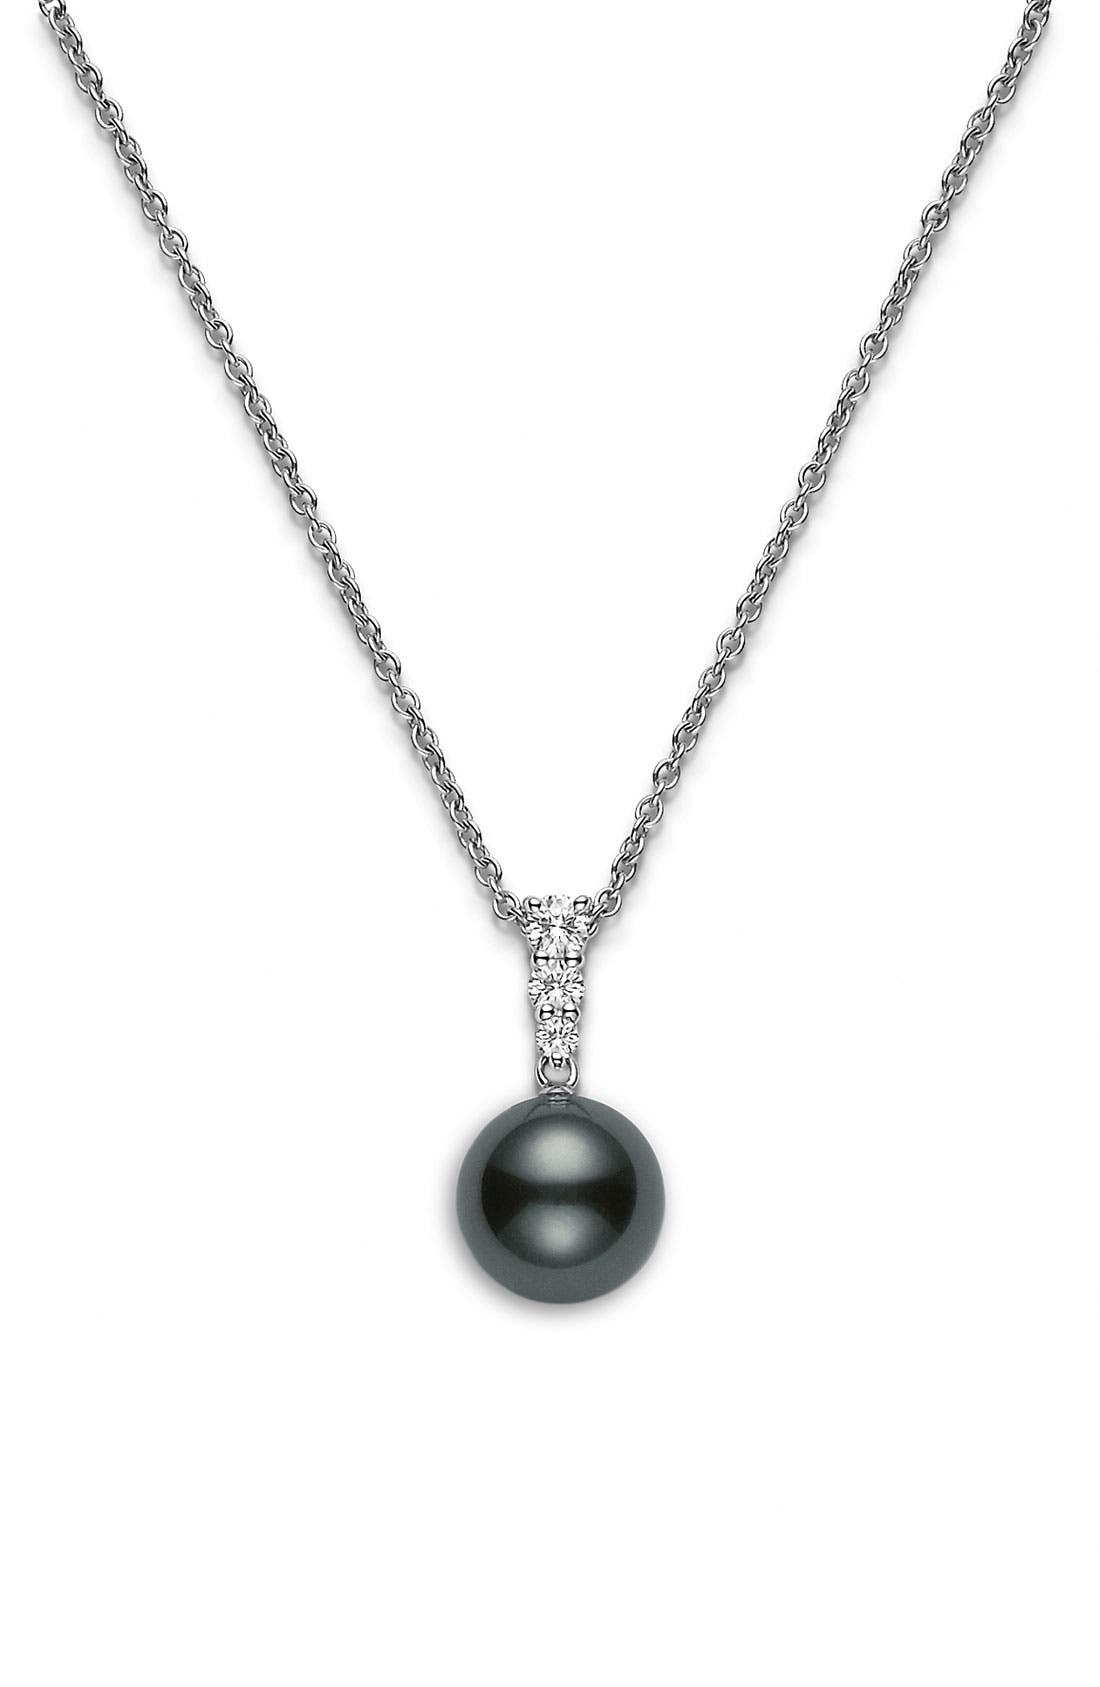 Alternate Image 1 Selected - Mikimoto 'Morning Dew' Black South Sea Cultured Pearl & Diamond Pendant Necklace